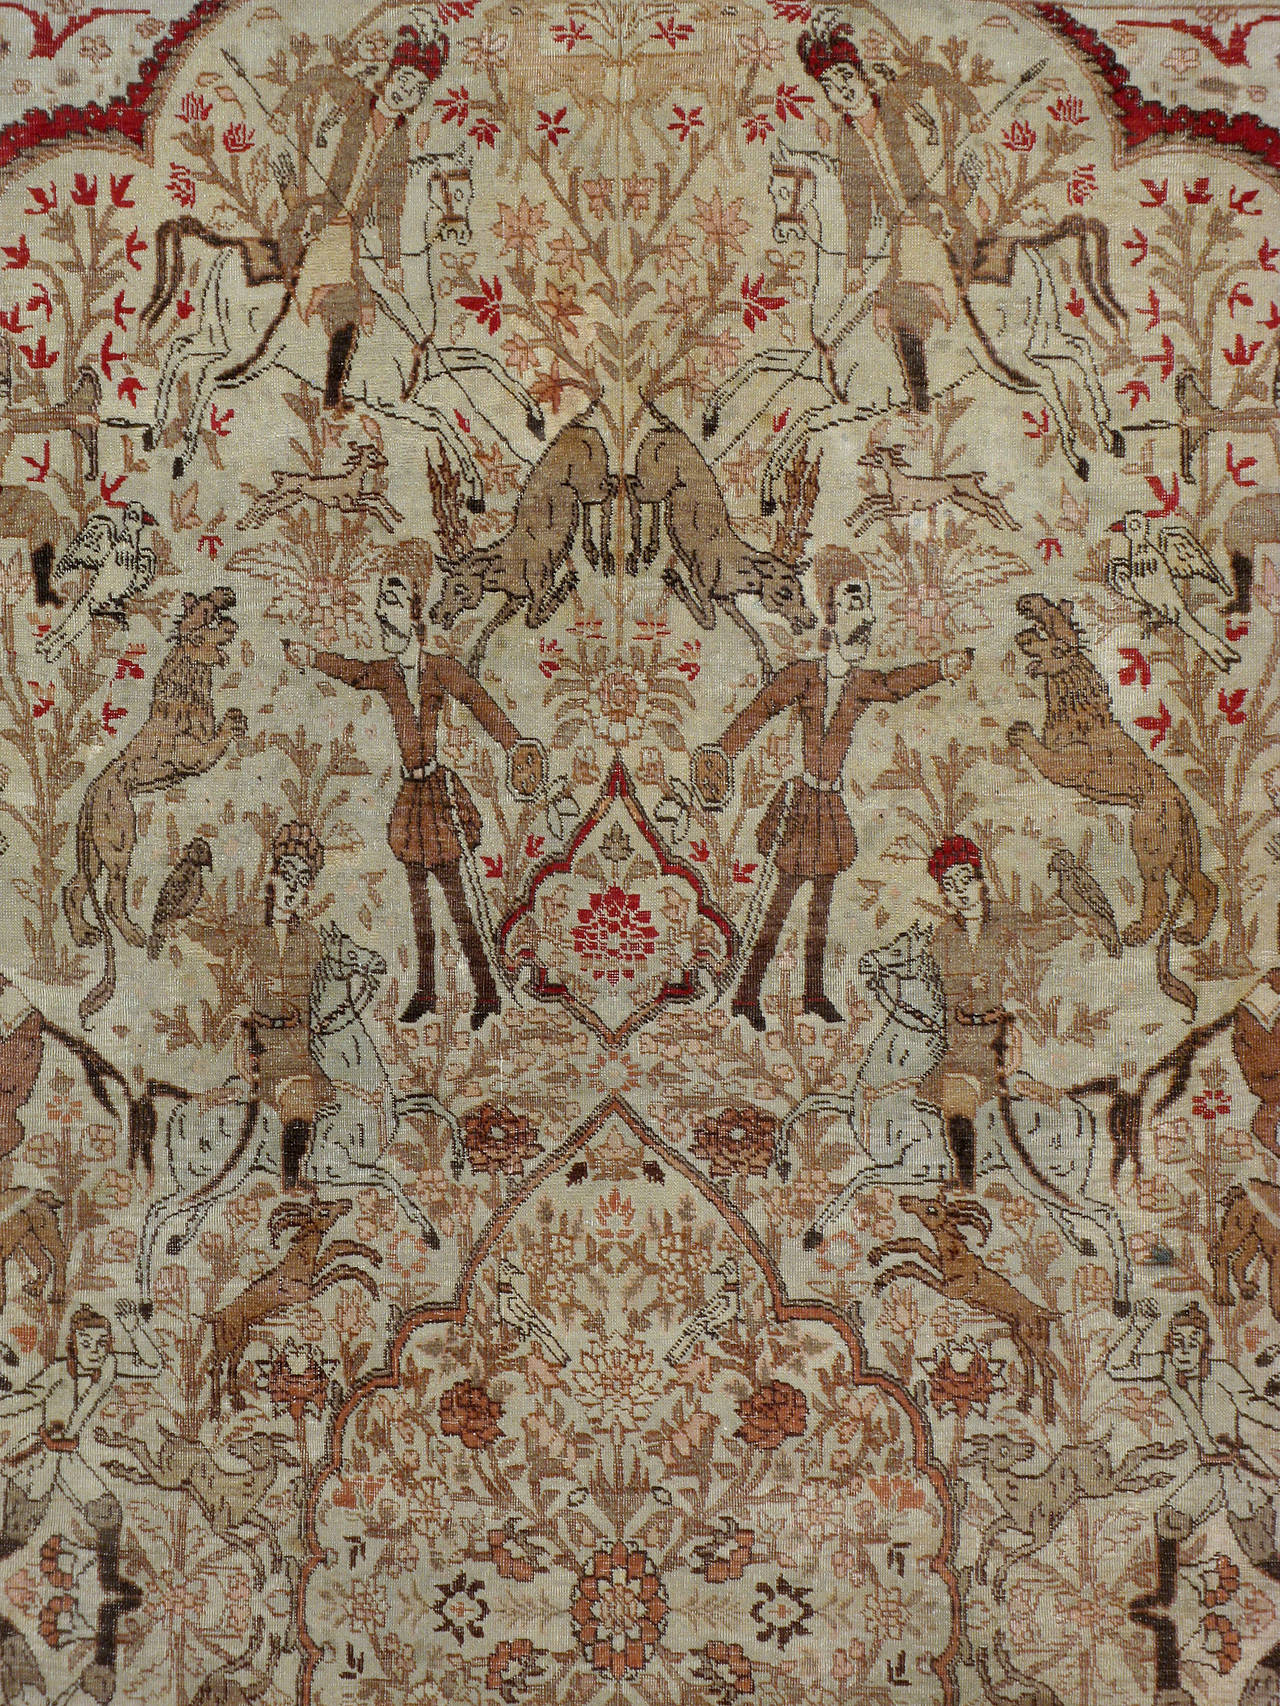 An antique Persian Tabriz carpet from the turn of the 20th century depicting a pictorial design of a Persian hunting ground. 